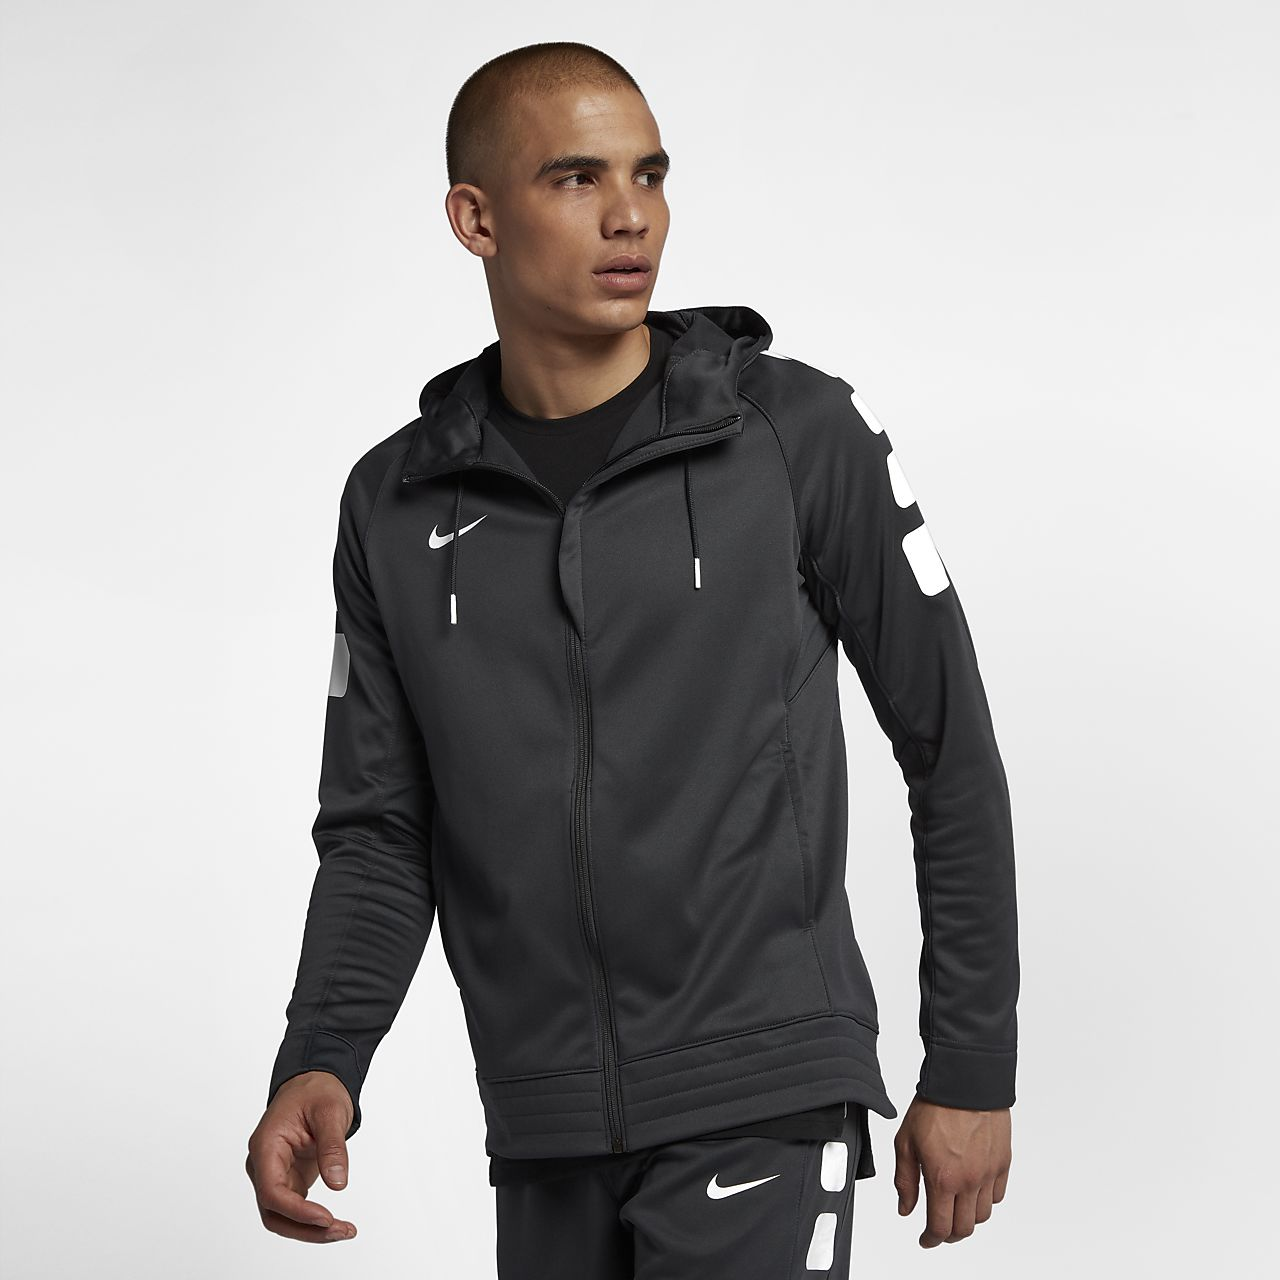 c9f4a9cd1 Nike Therma Elite Men's Basketball Hoodie. Nike.com